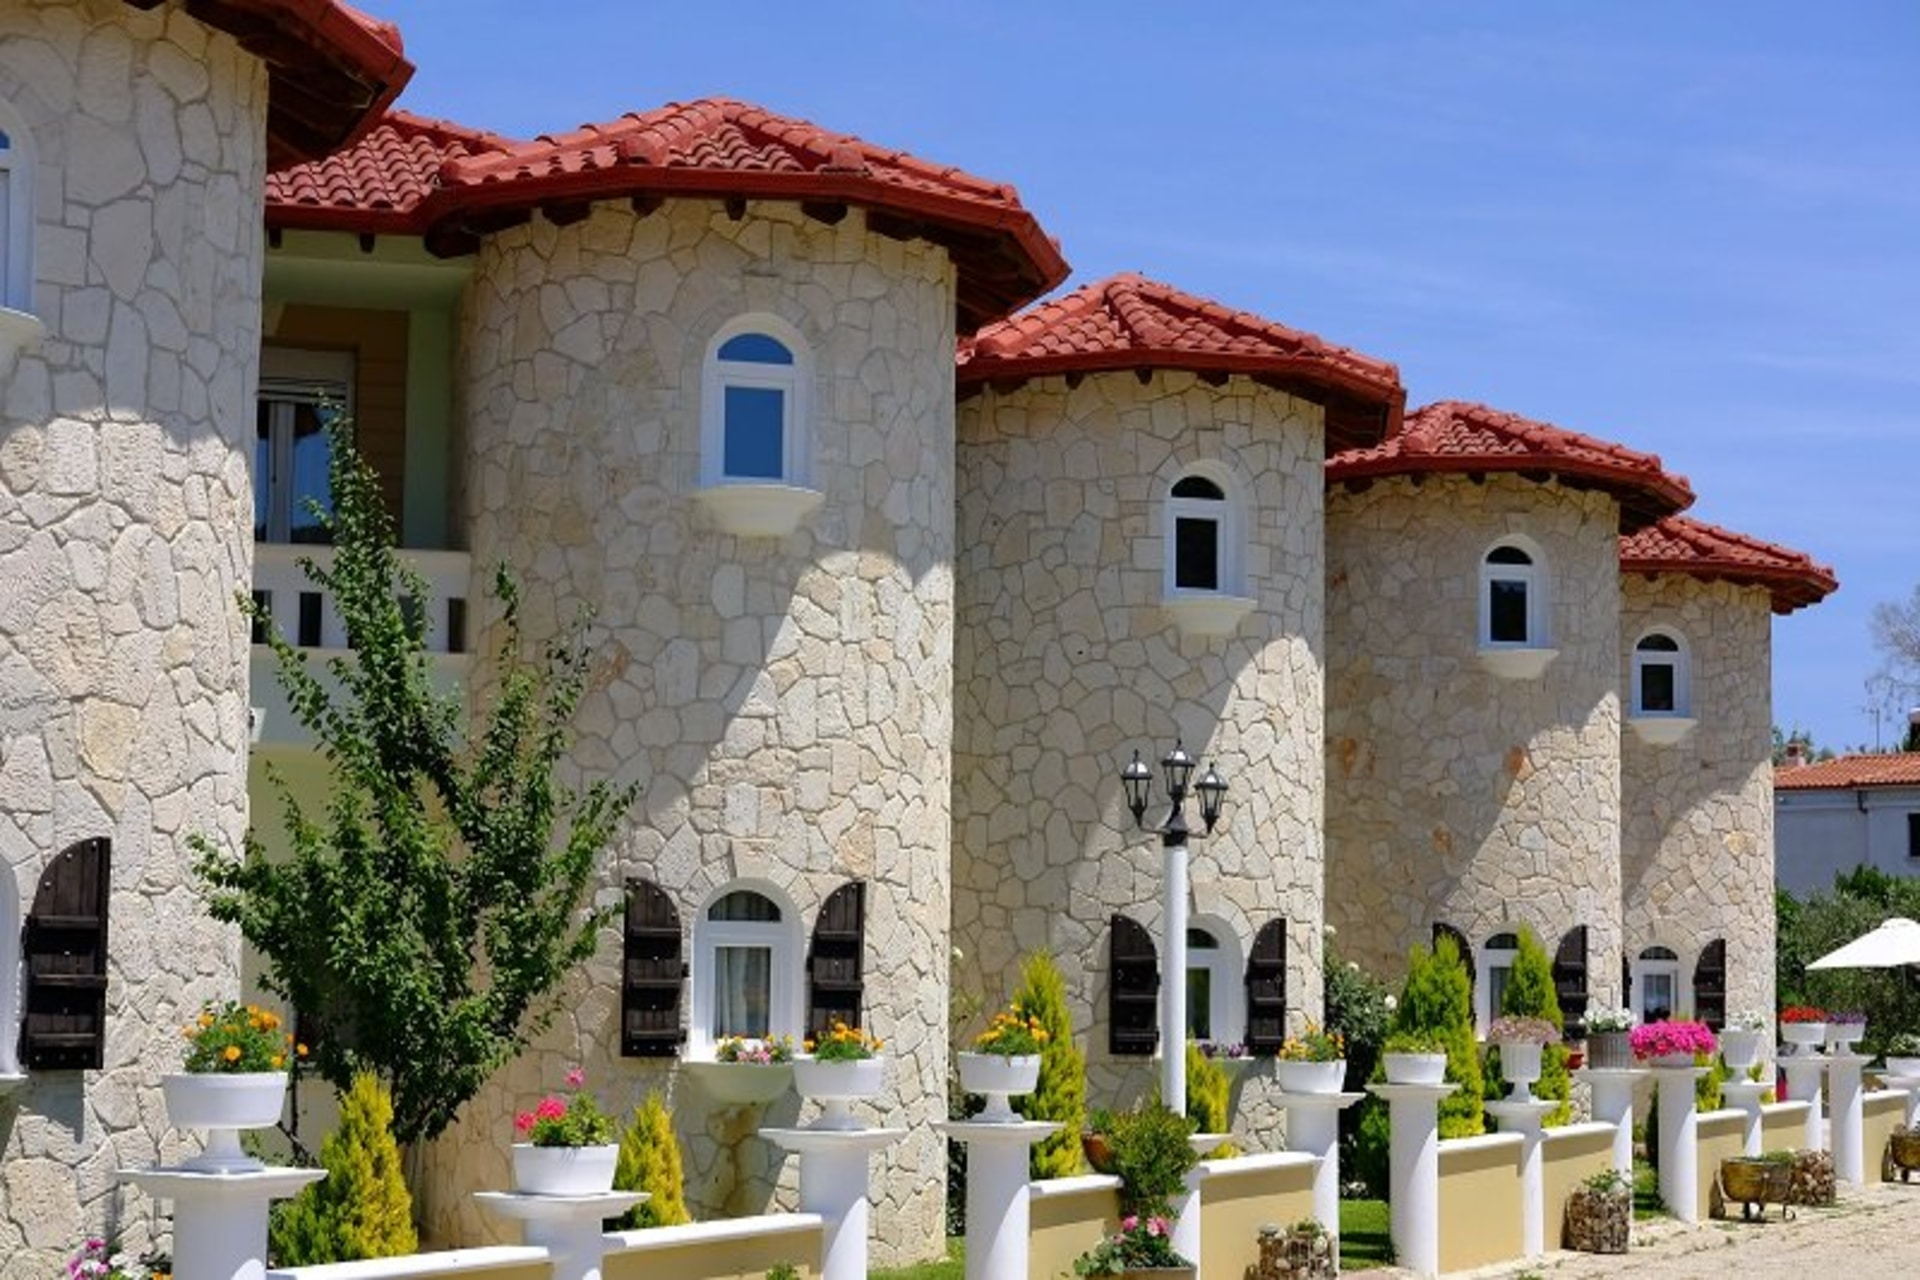 Cottages in Crete